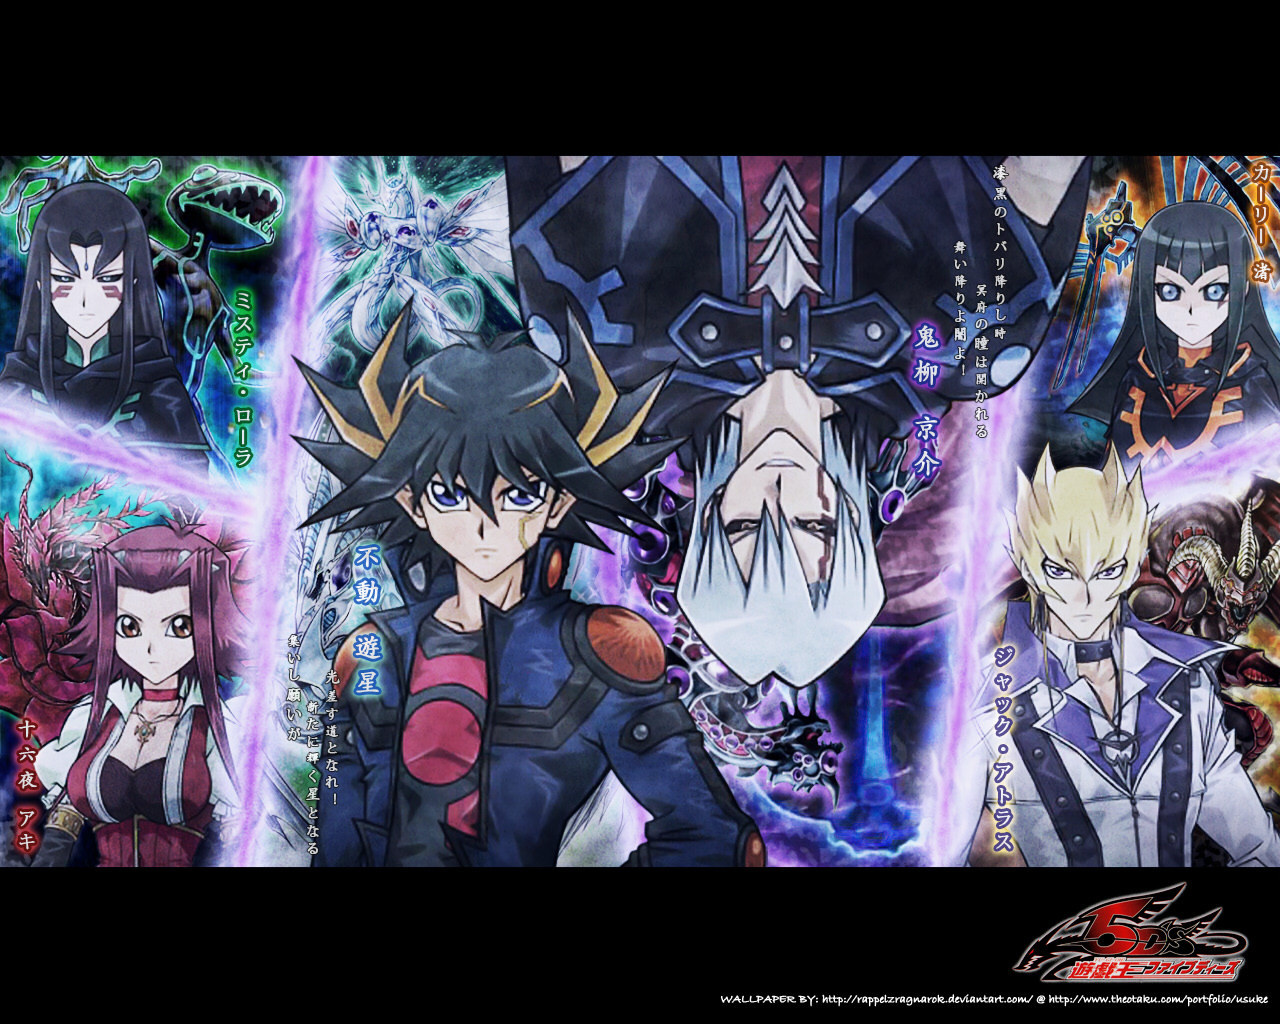 Yu Gi Oh 5Ds images Yu Gi Oh 5Ds wallpaper photos 17356148 1280x1024